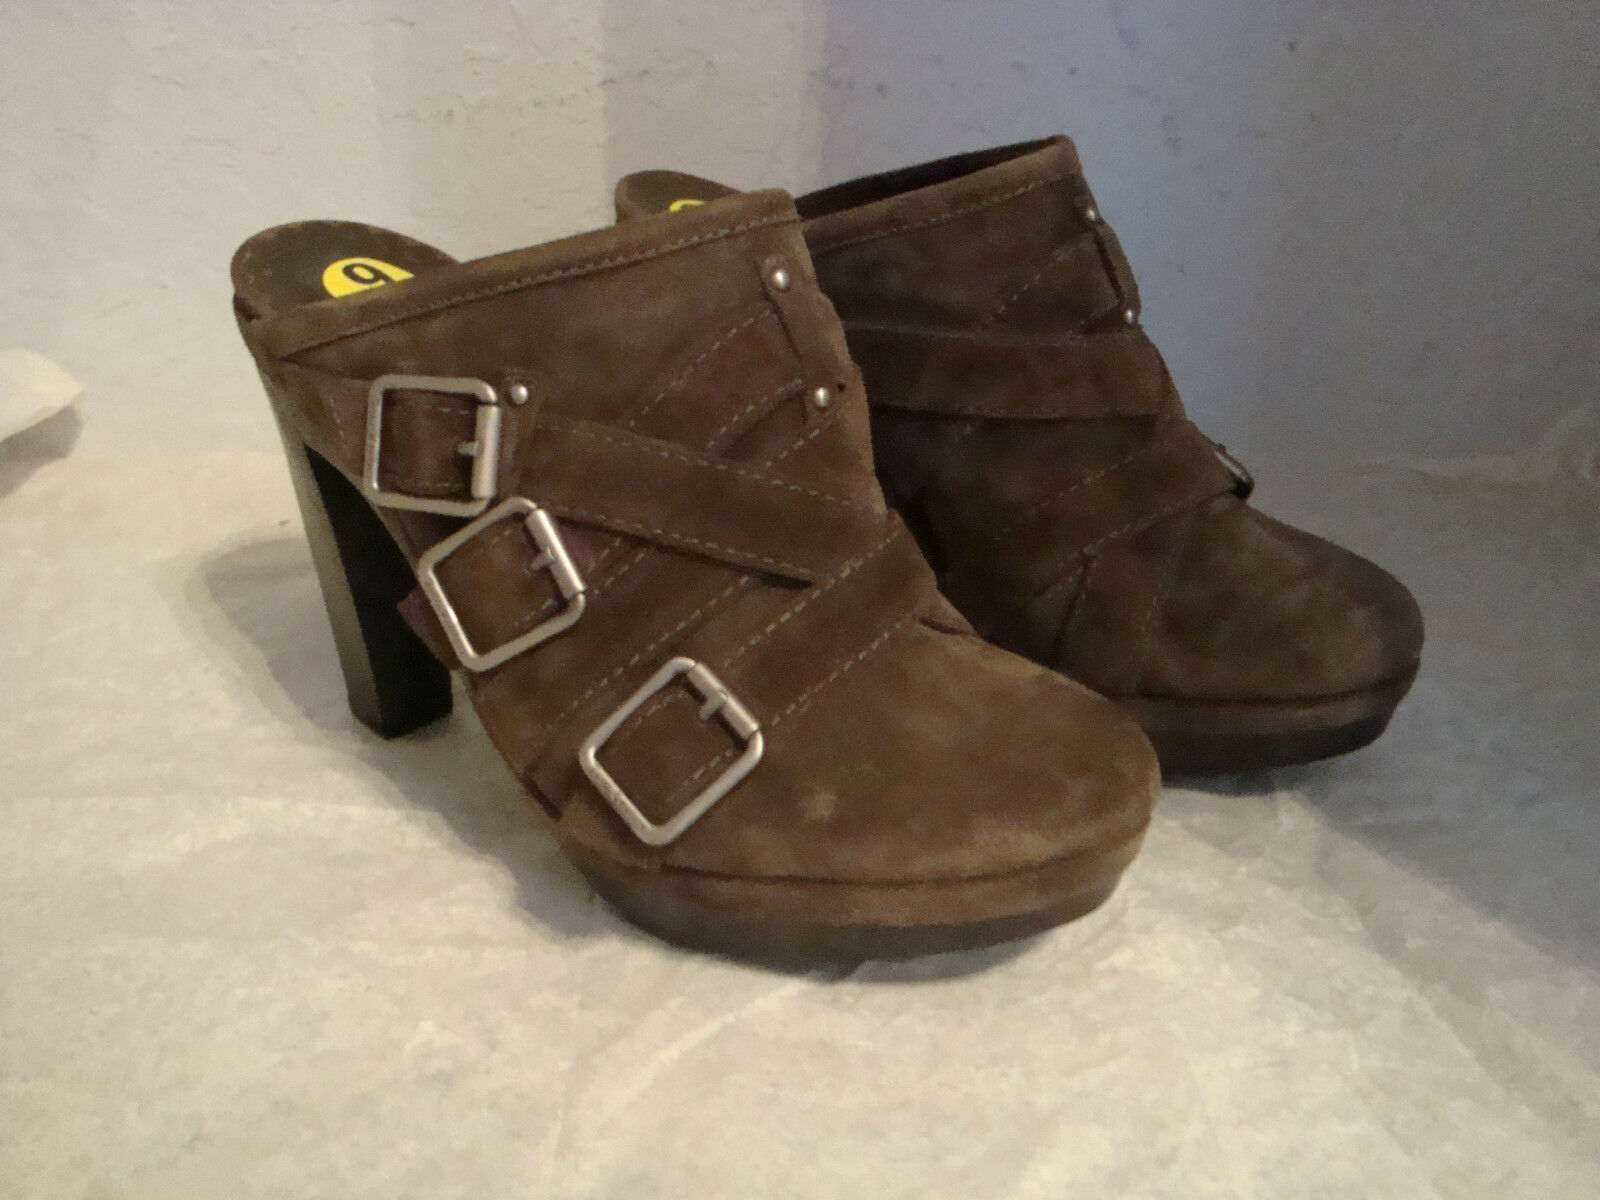 NEU Juicy Couture Damenschuhe Light Braun Clogs Stiefel 9 Medium